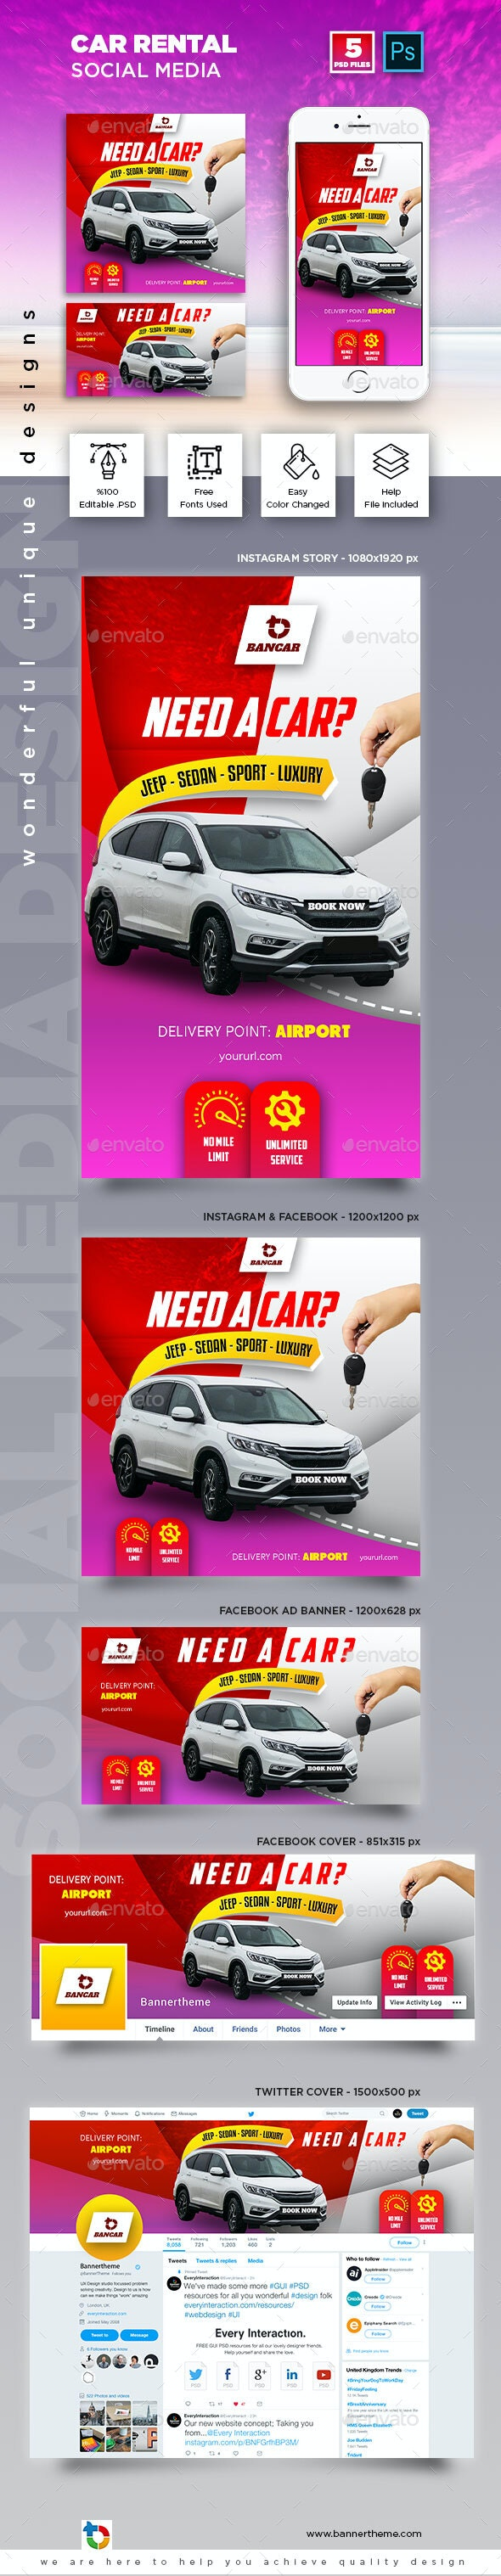 Car Rental Social Media Banner - Social Media Web Elements